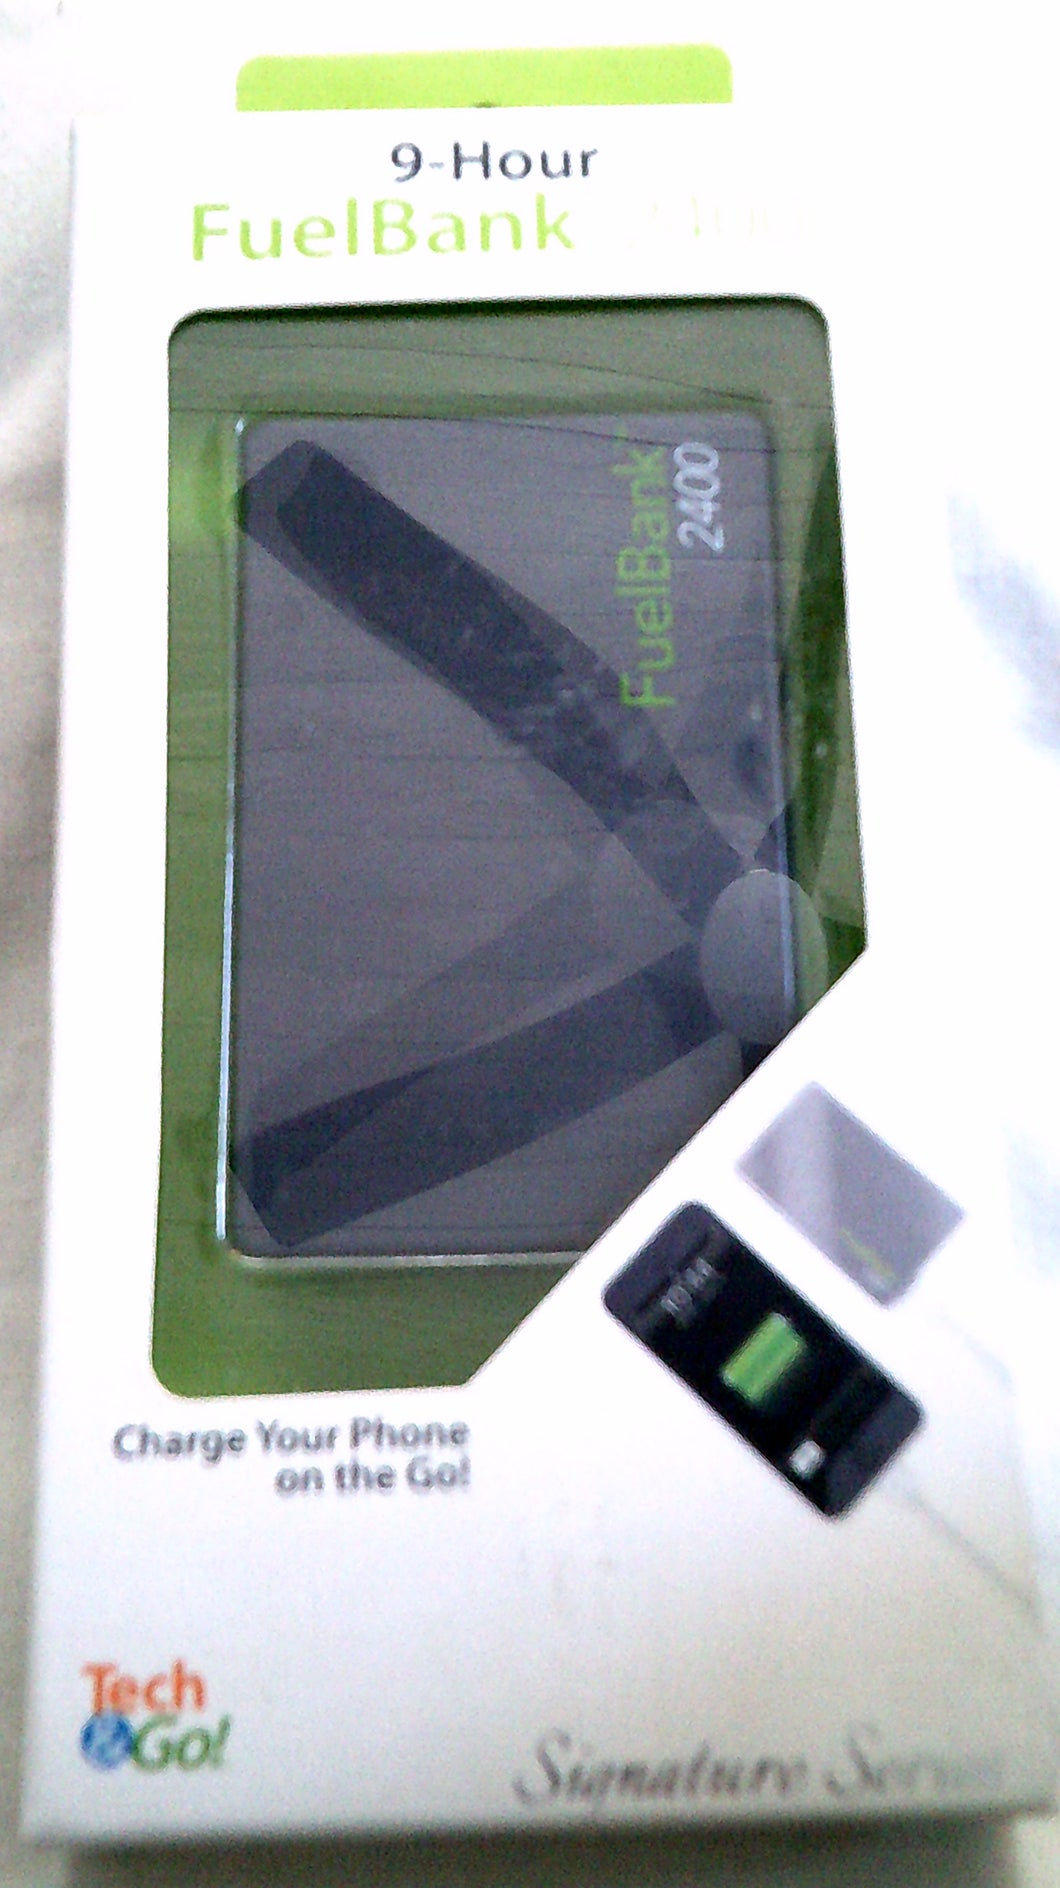 Tech & Go! 9-Hour FuelBank 2400 Charger for iPhones & Androids - New